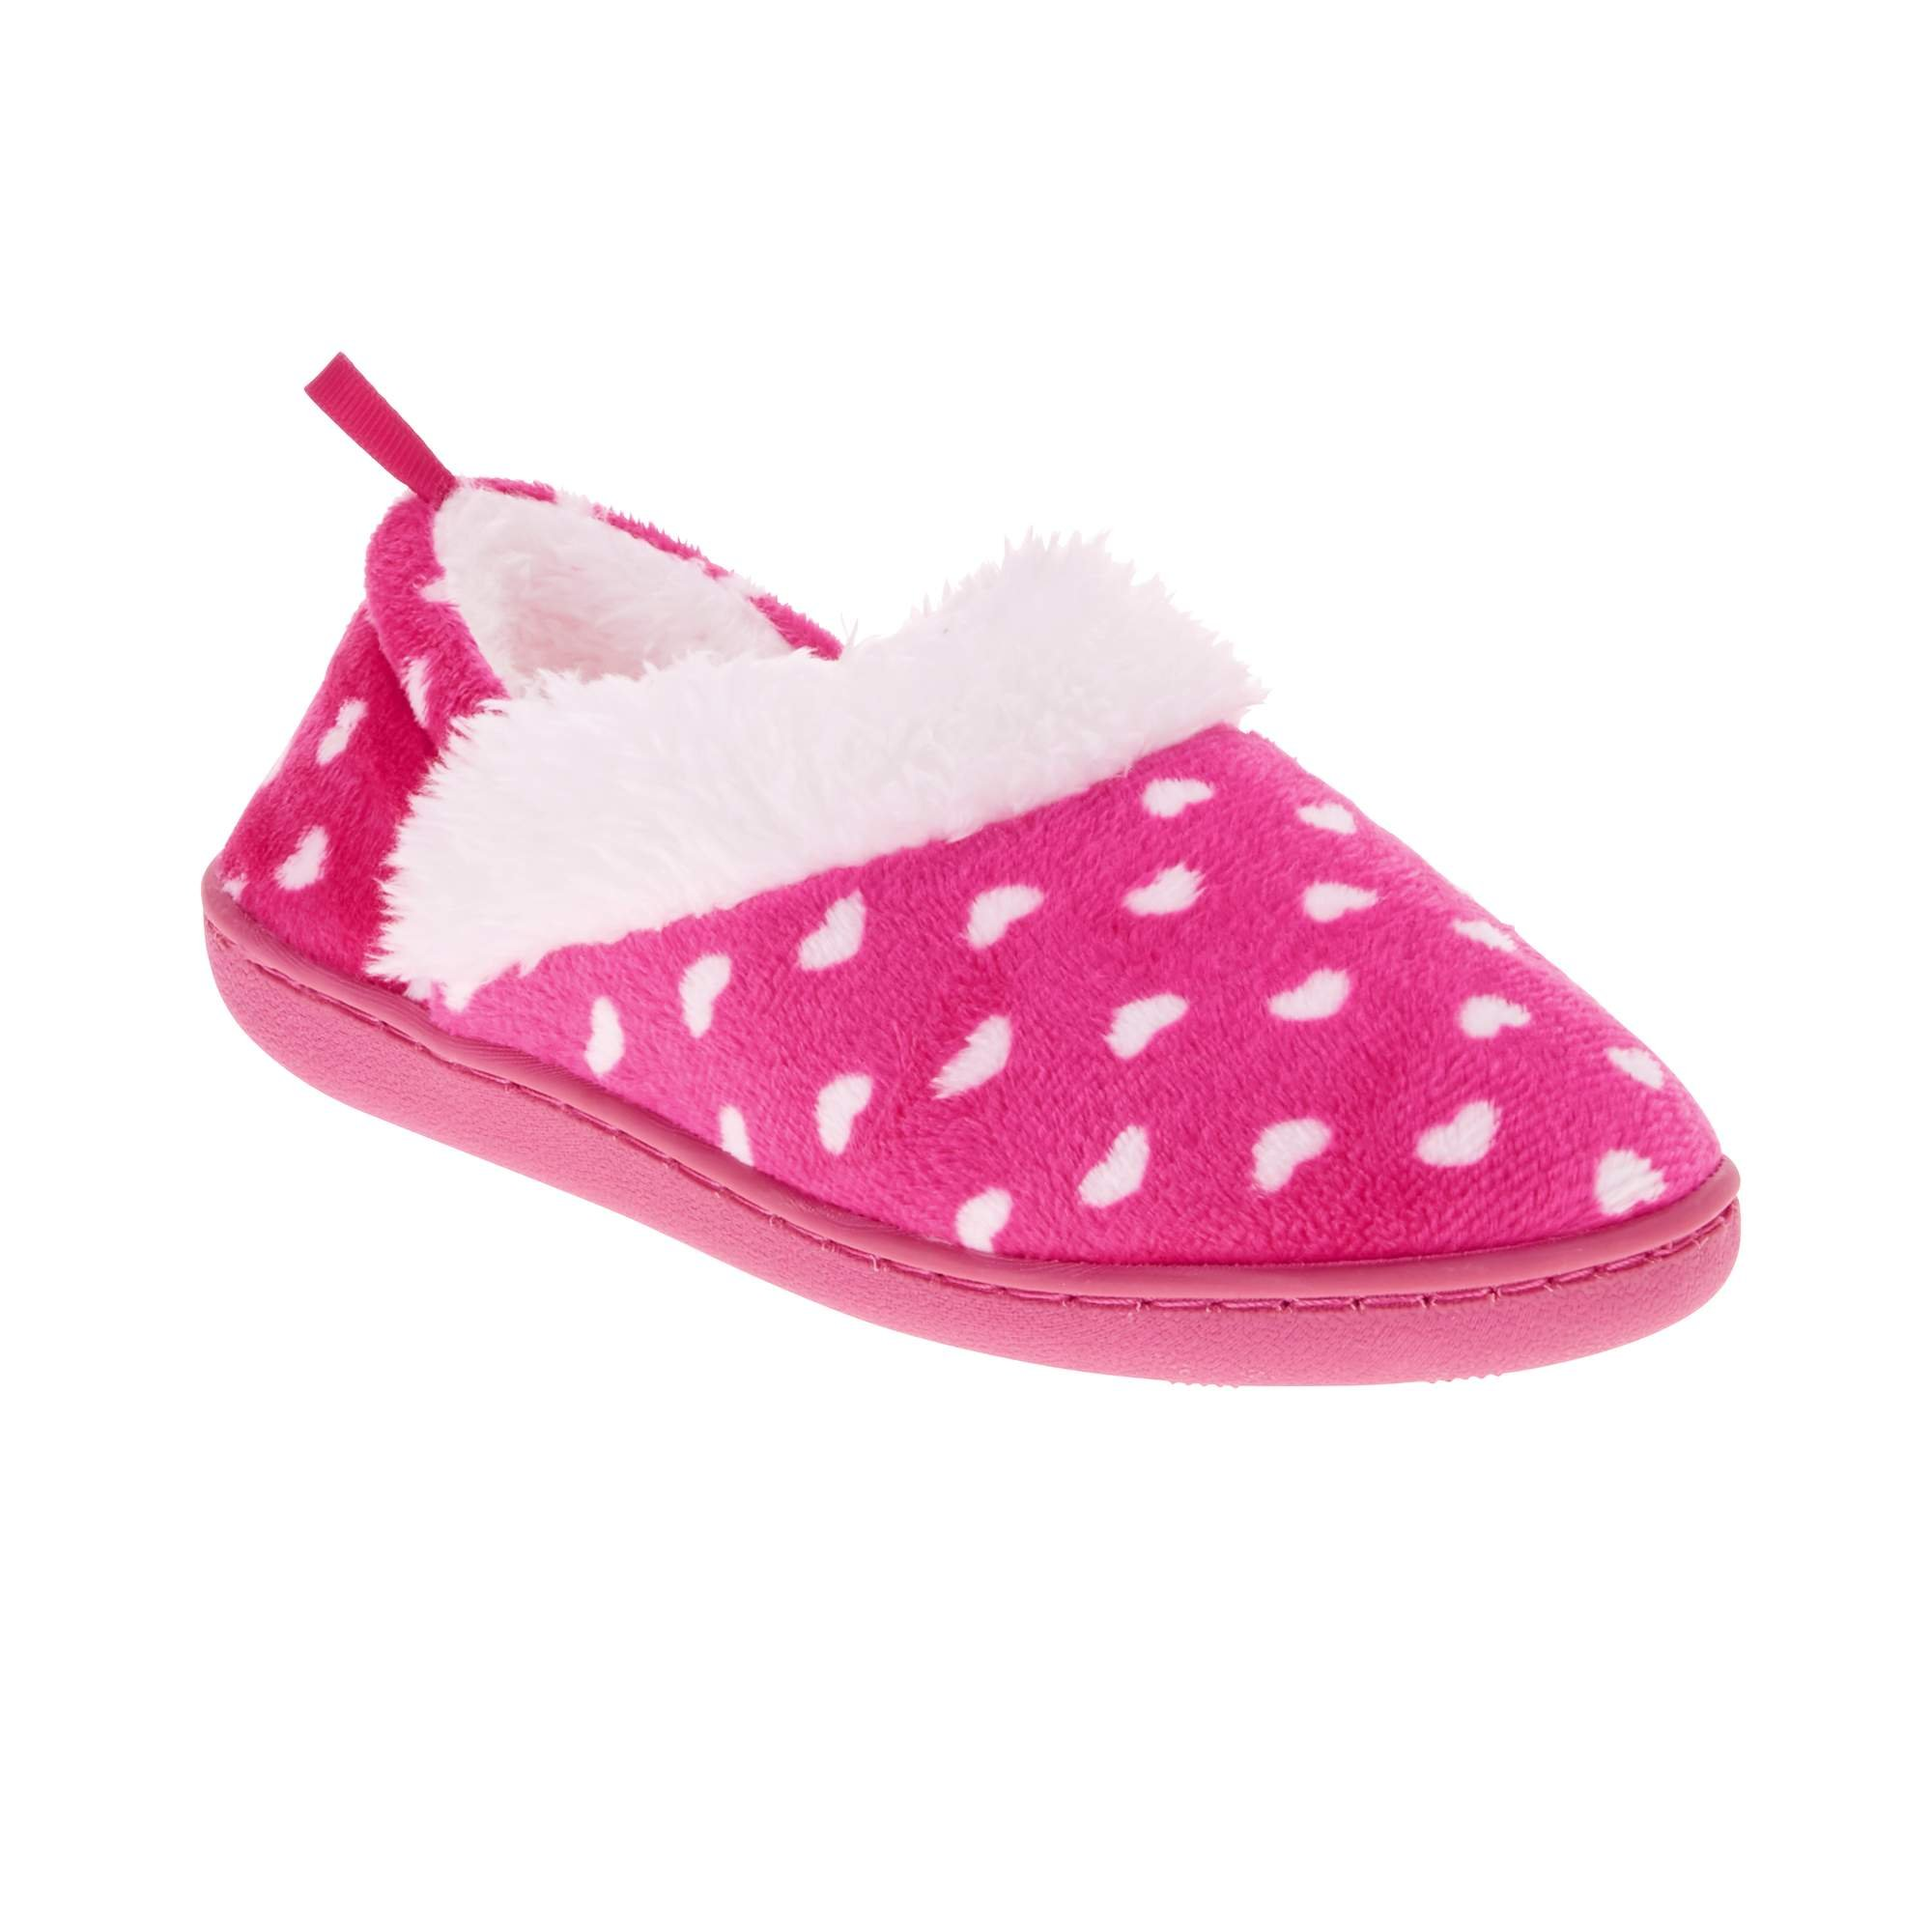 WMS Hearts All Over Pink Faux Fur Slippers Size Medium 7-8